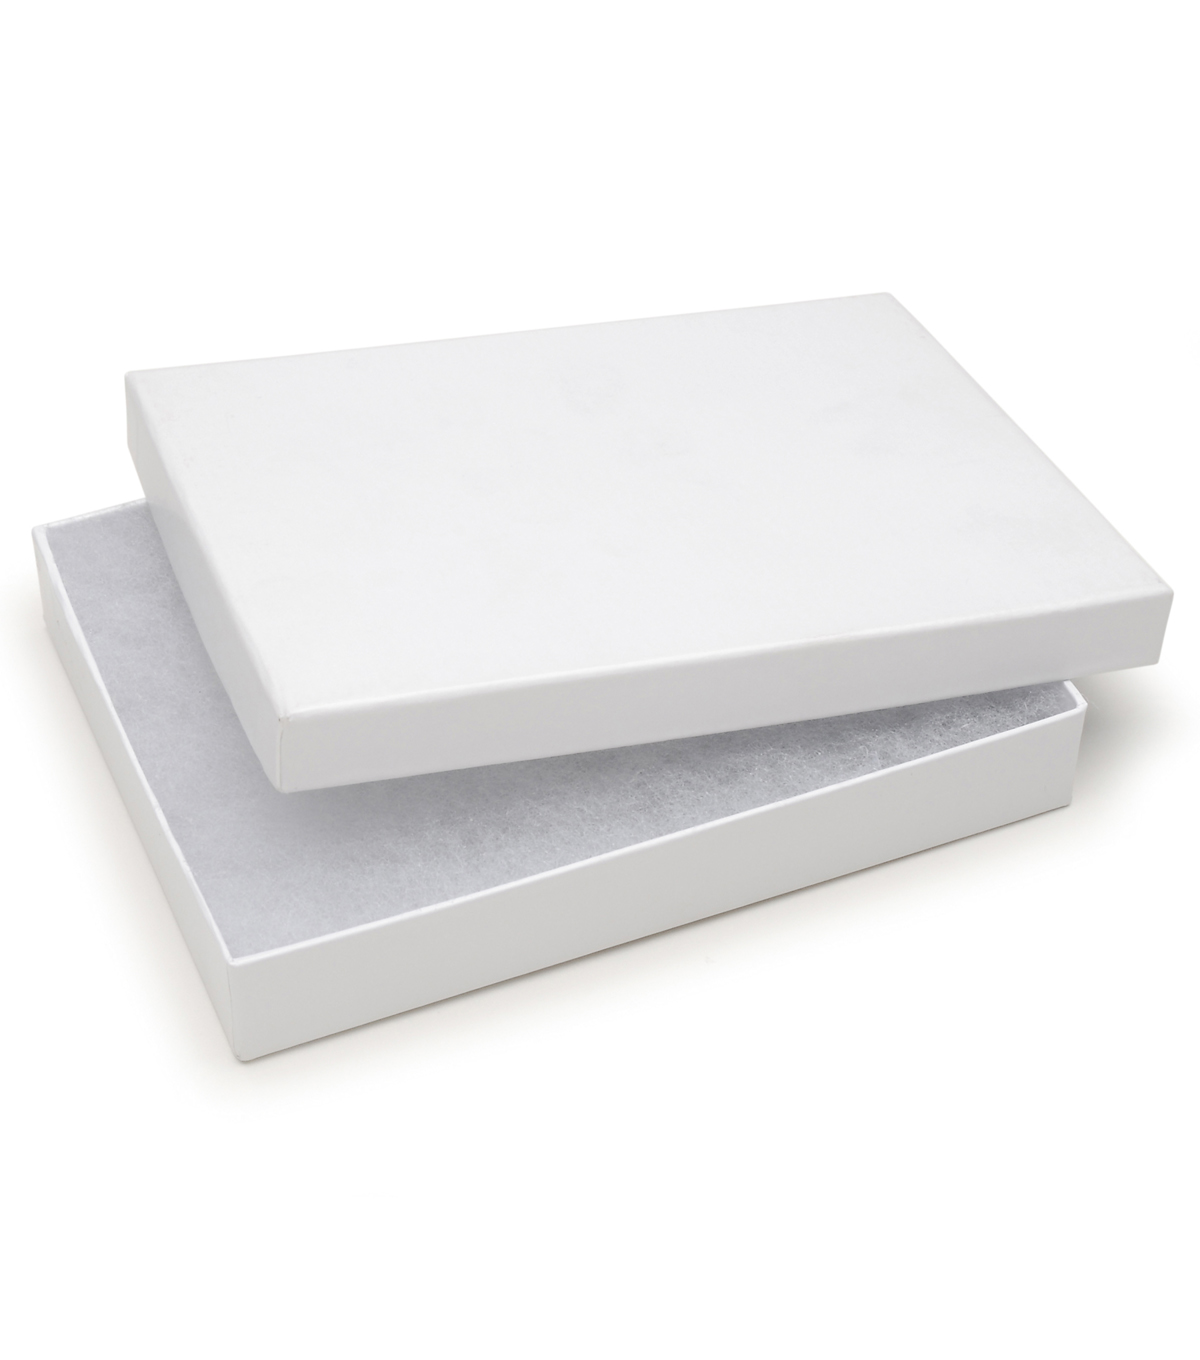 Darice® 5\u0027\u0027x6\u0027\u0027 Jewelry Box with Filler-White